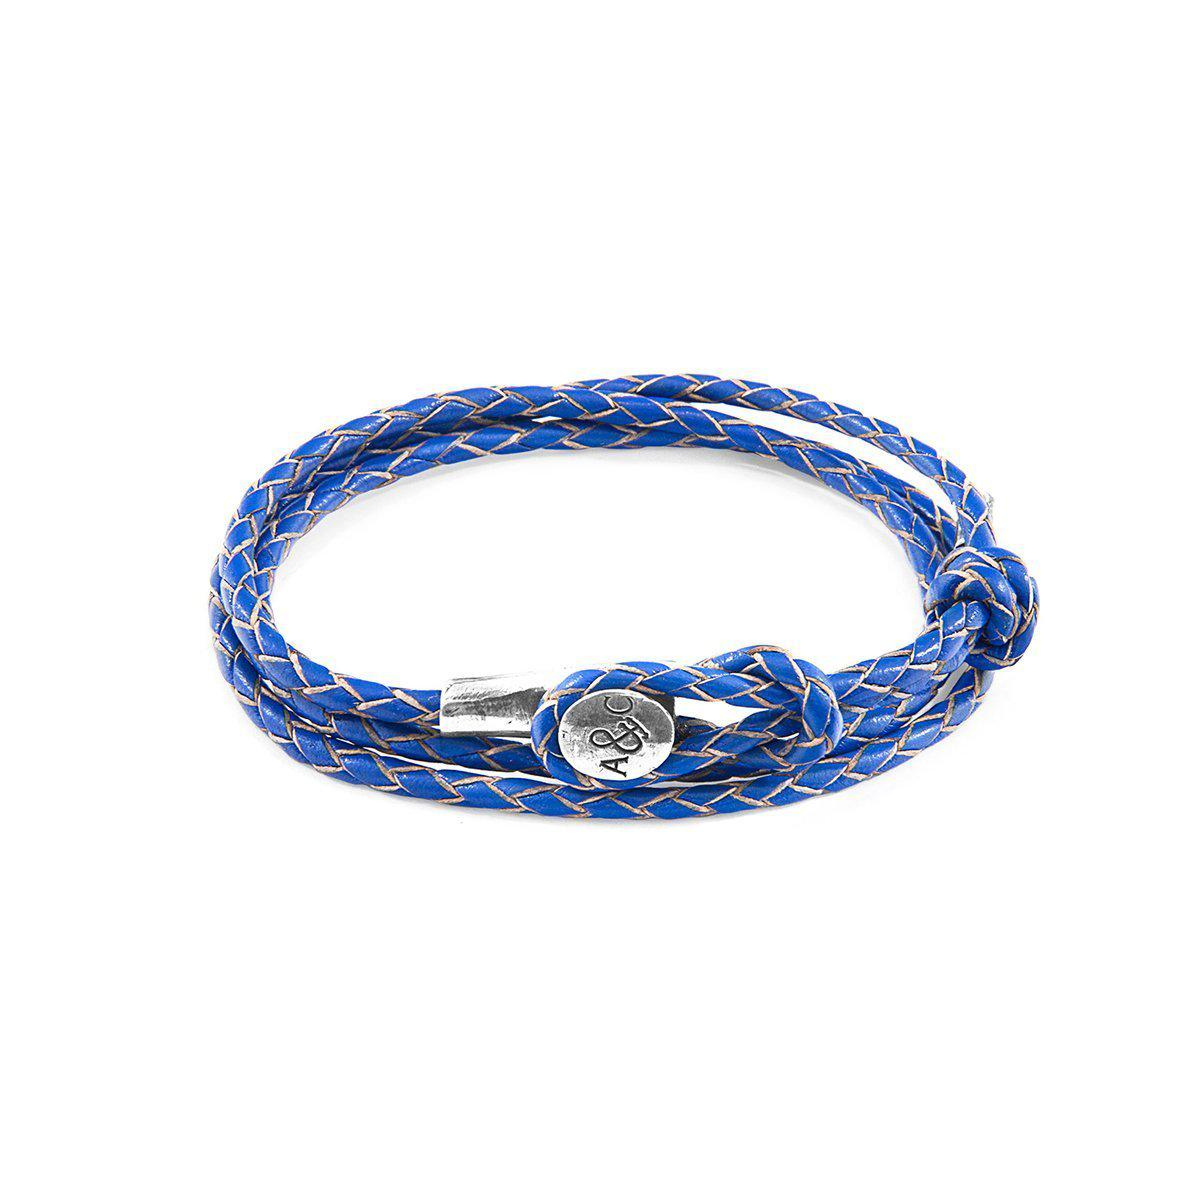 Anchor & Crew Royal Blue Union Silver And Leather Bracelet jBrxD